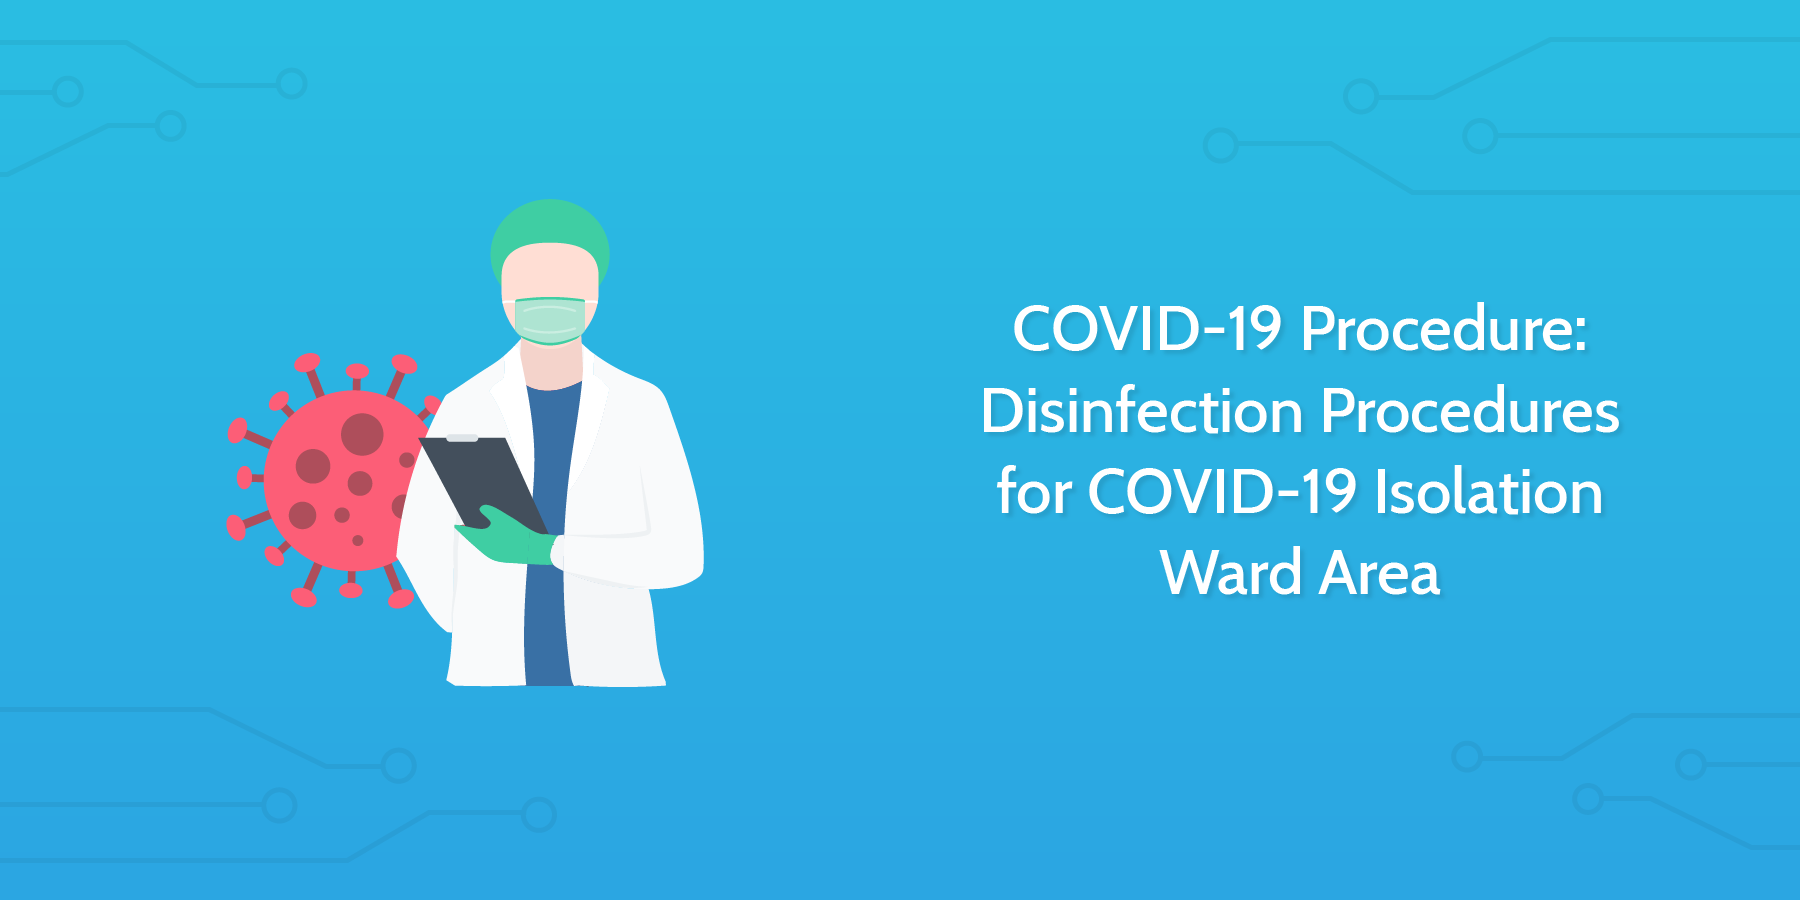 COVID-19 Procedure: Disinfection Procedures for COVID-19 Isolation Ward Area